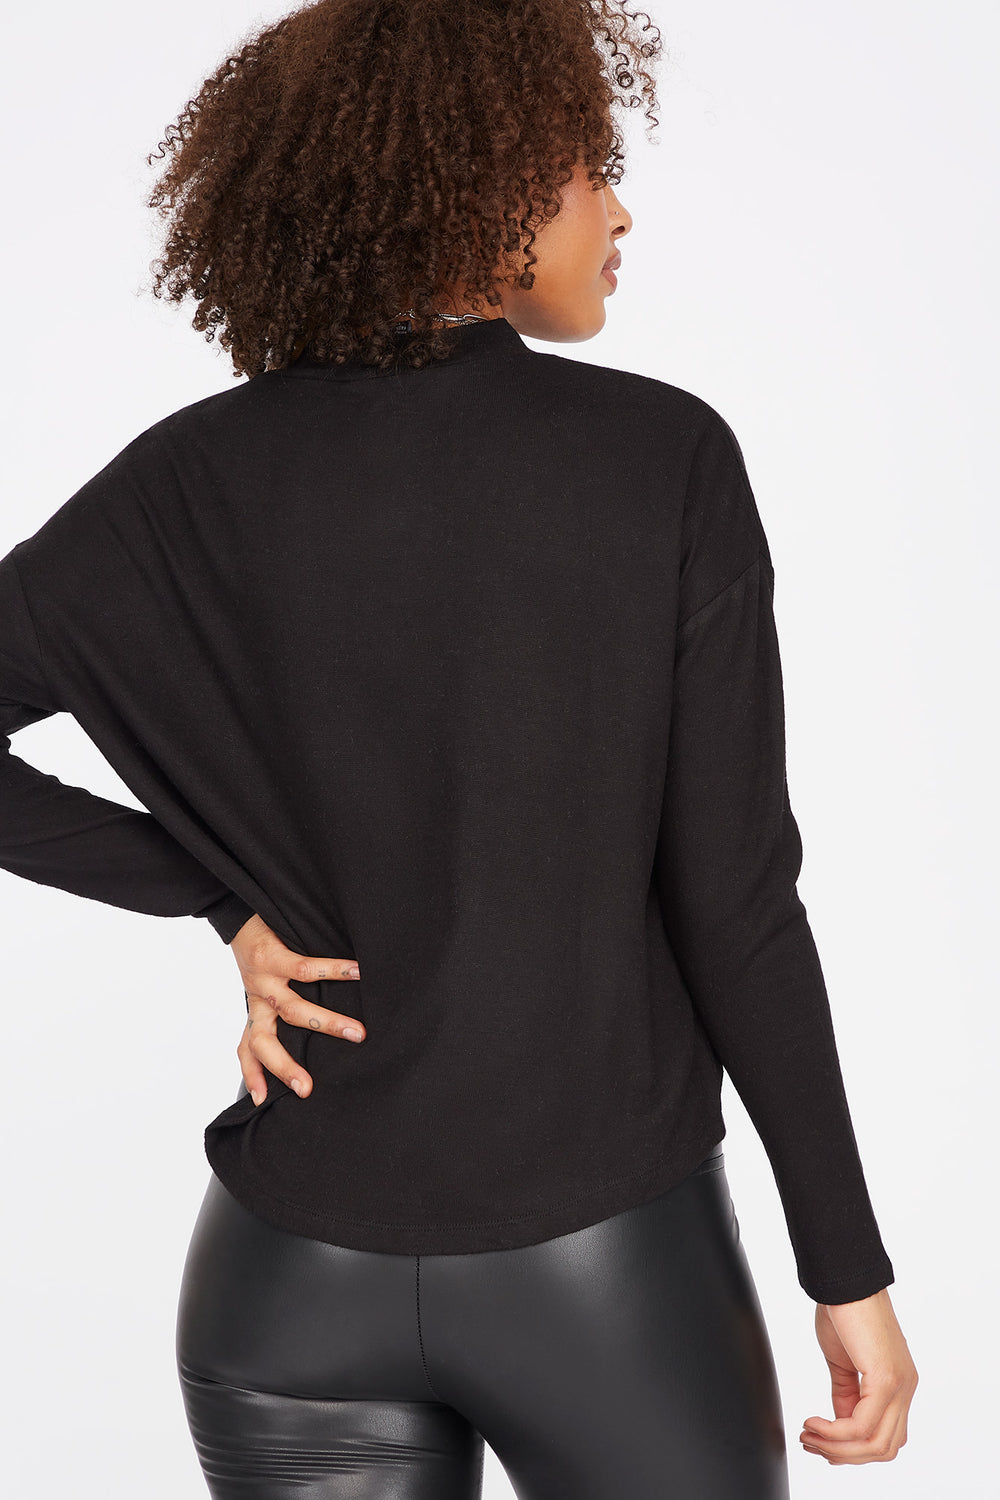 Relaxed Mock Neck Long Dolman Sleeve Top Black